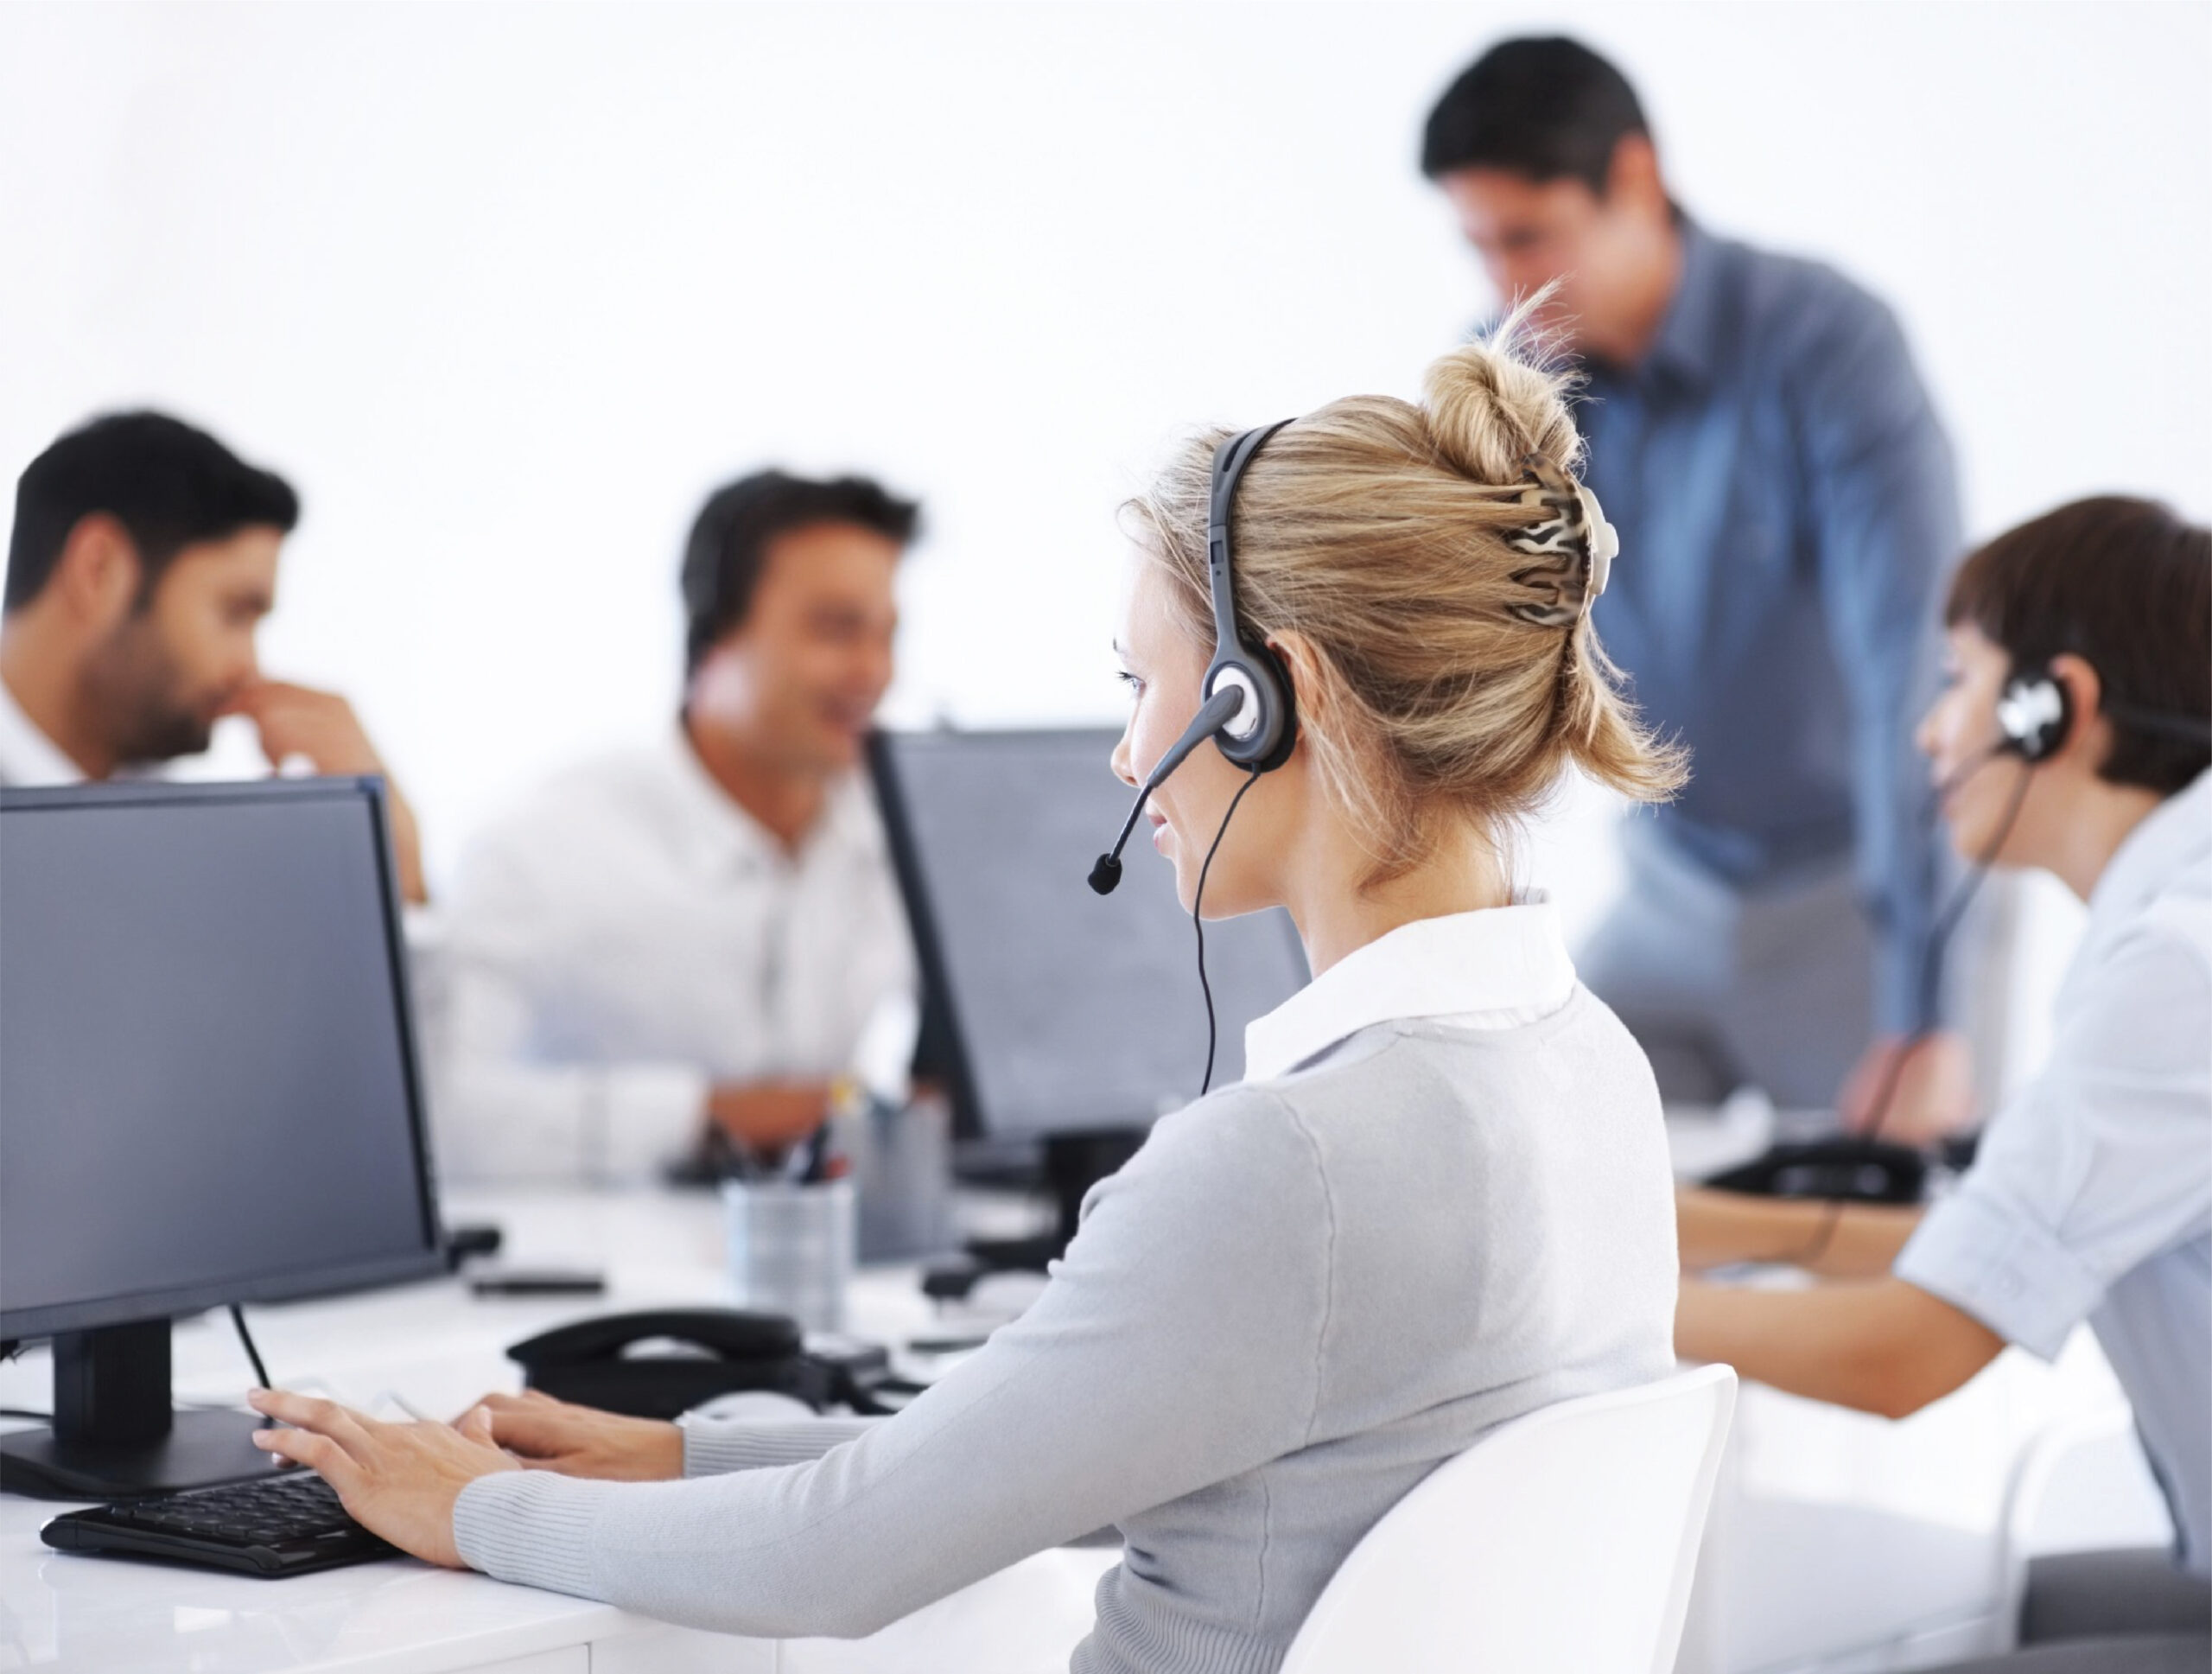 call center services, call centers solutions, call centers company, call center outsourcing